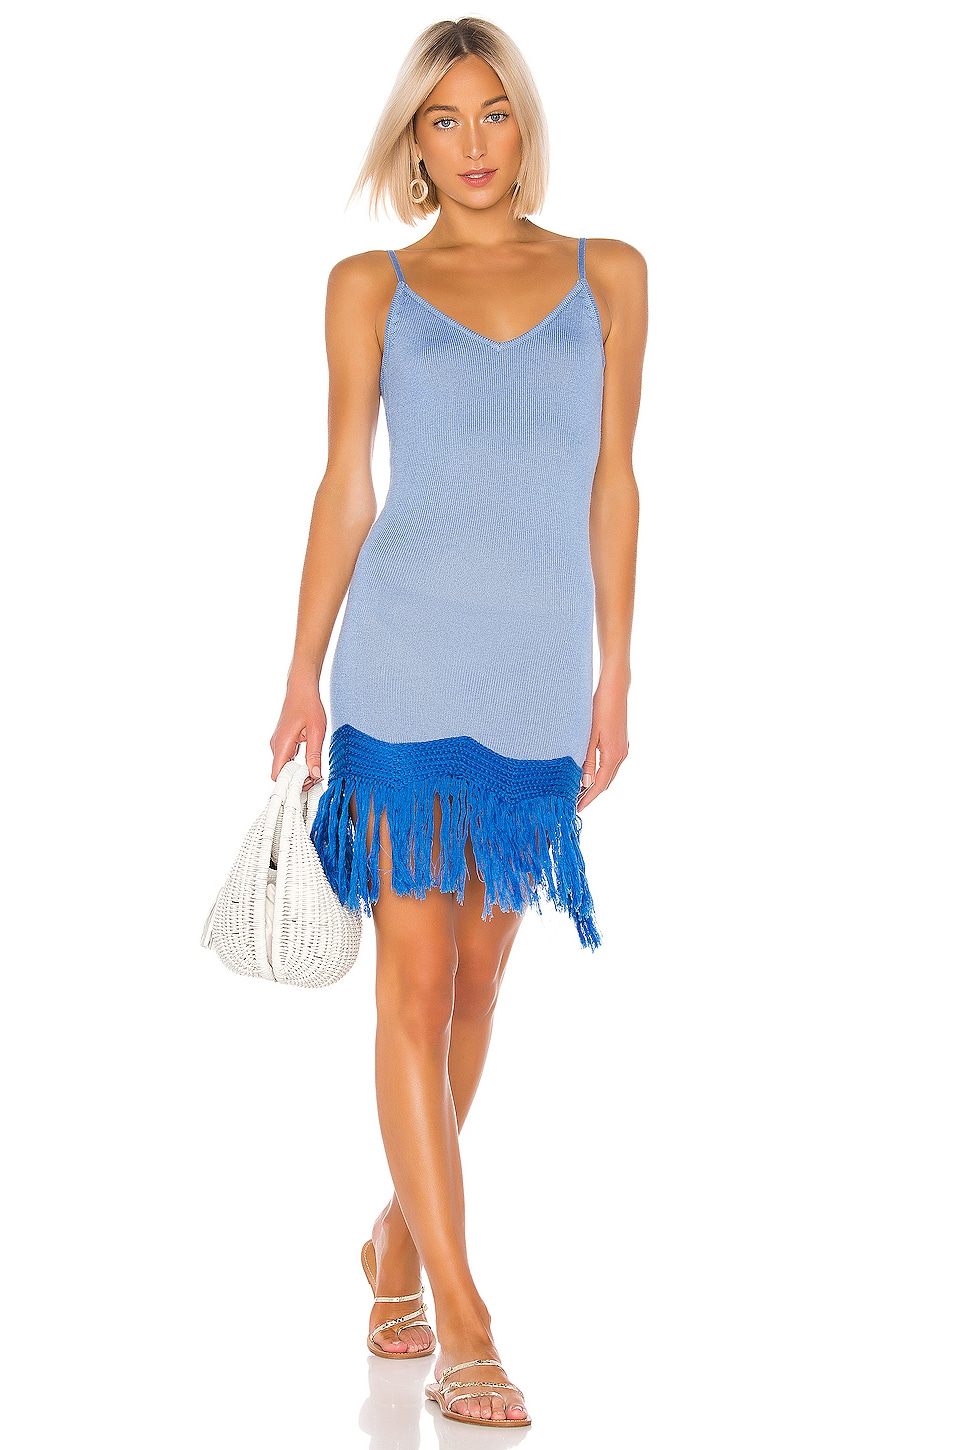 House of Harlow 1960 X REVOLVE Isla Dress in Blue